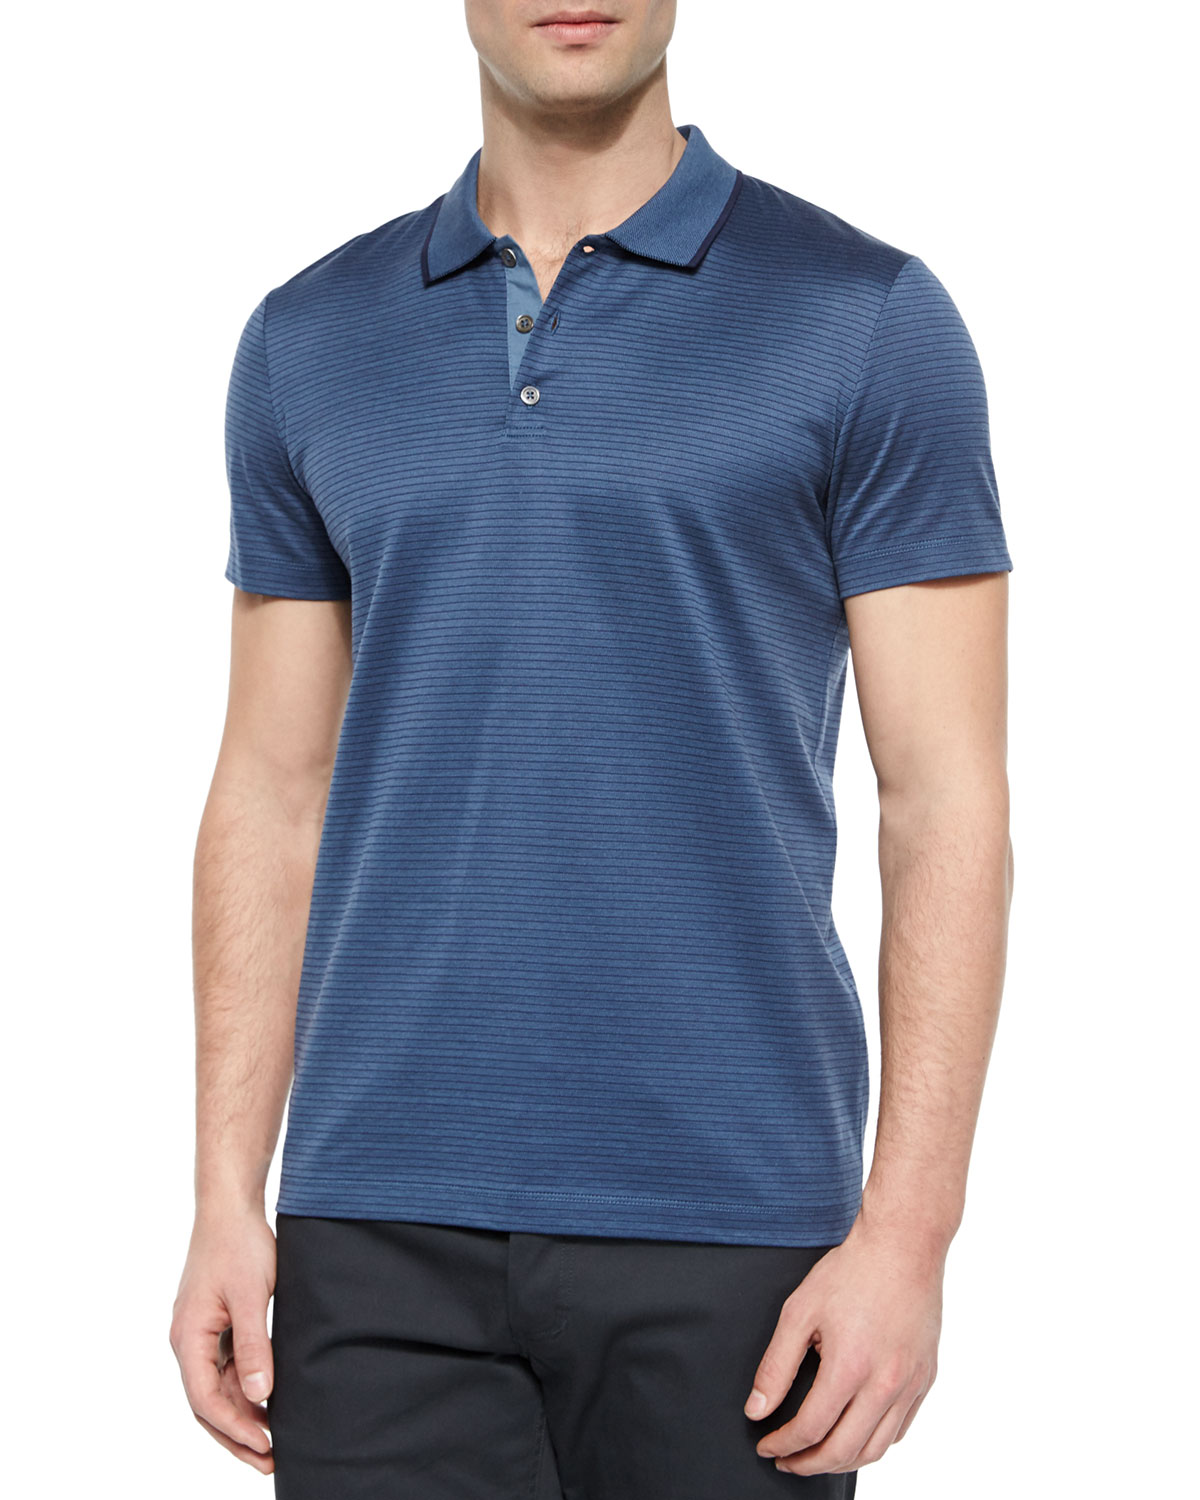 Boyd Striped Short-Sleeve Polo Shirt, Blue